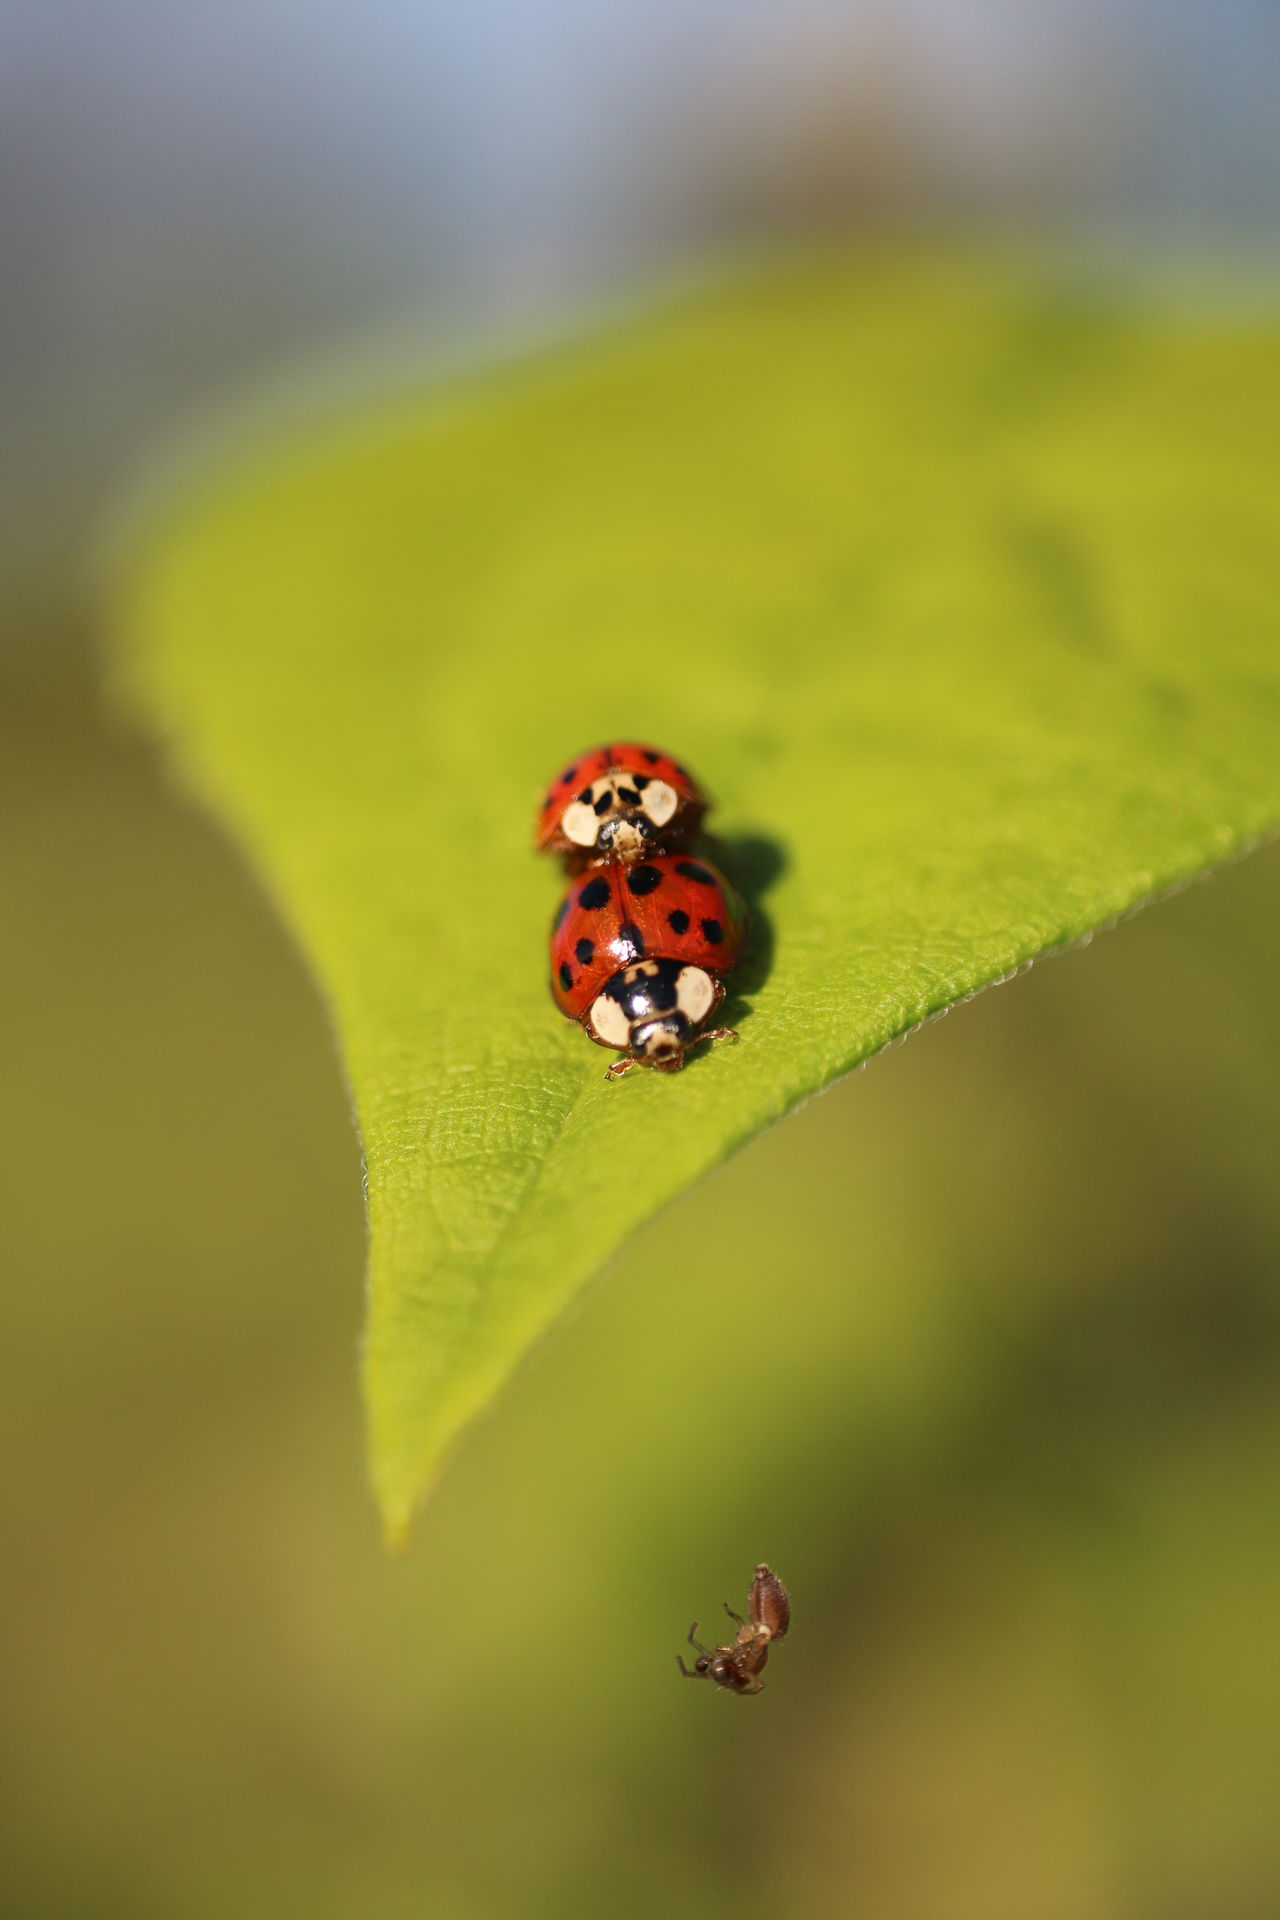 ladybugs copulating Animal Themes Animal Wildlife Animals In The Wild Beauty In Nature Capture The Moment Close-up Copulating Day EyeEm Best Shots EyeEm Nature Lover Insect Ladybug Leaf Macro Nature No People One Animal Outdoors Red Tiny